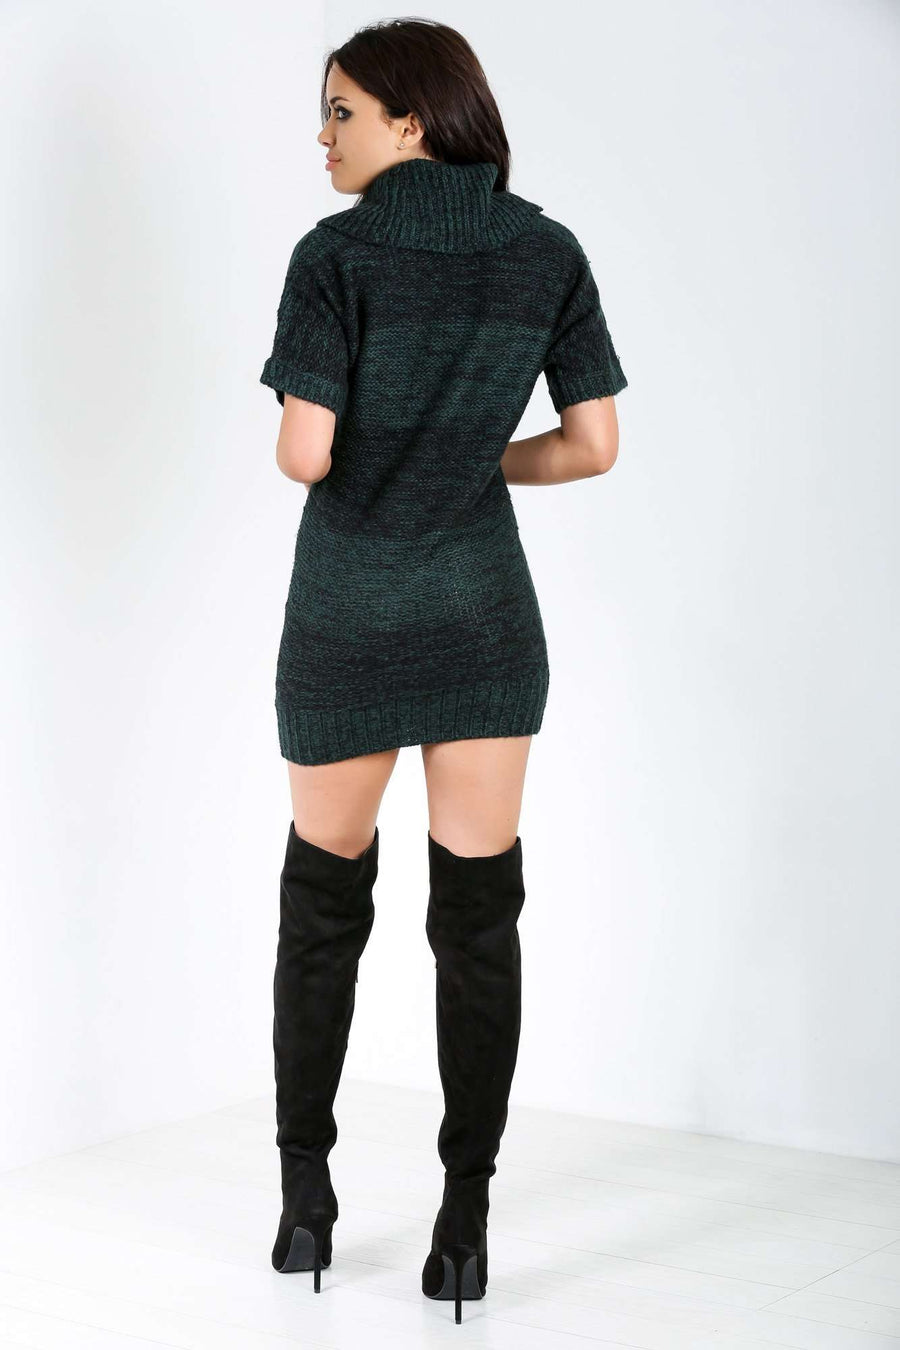 Gina Marl Knit Roll Neck Mini Dress - bejealous-com